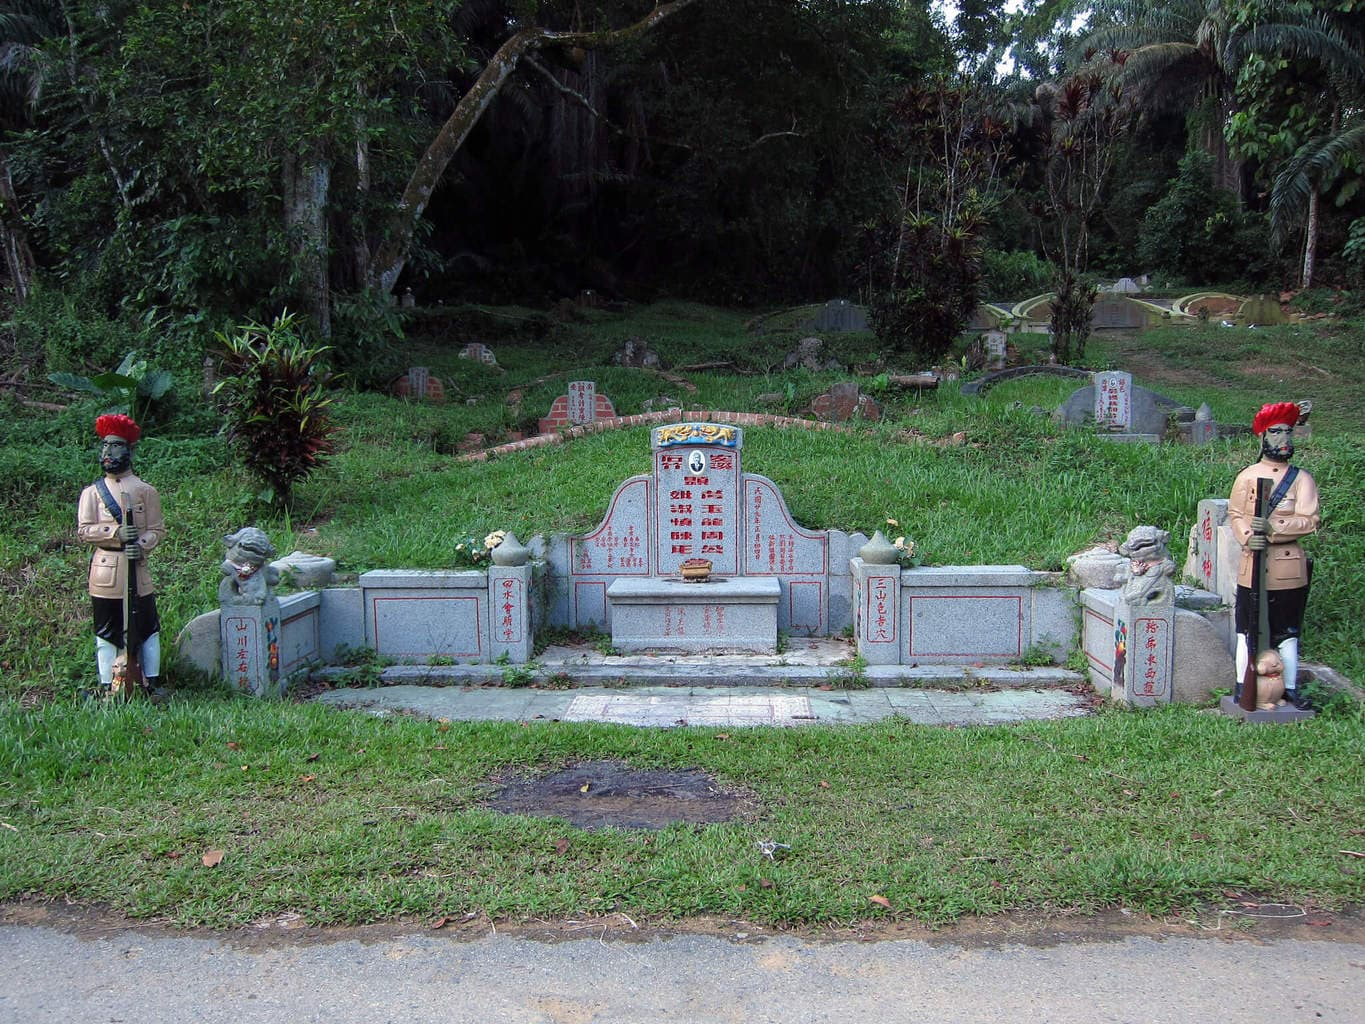 Chew Geok Leong tomb at Bukit Brown Cemetery